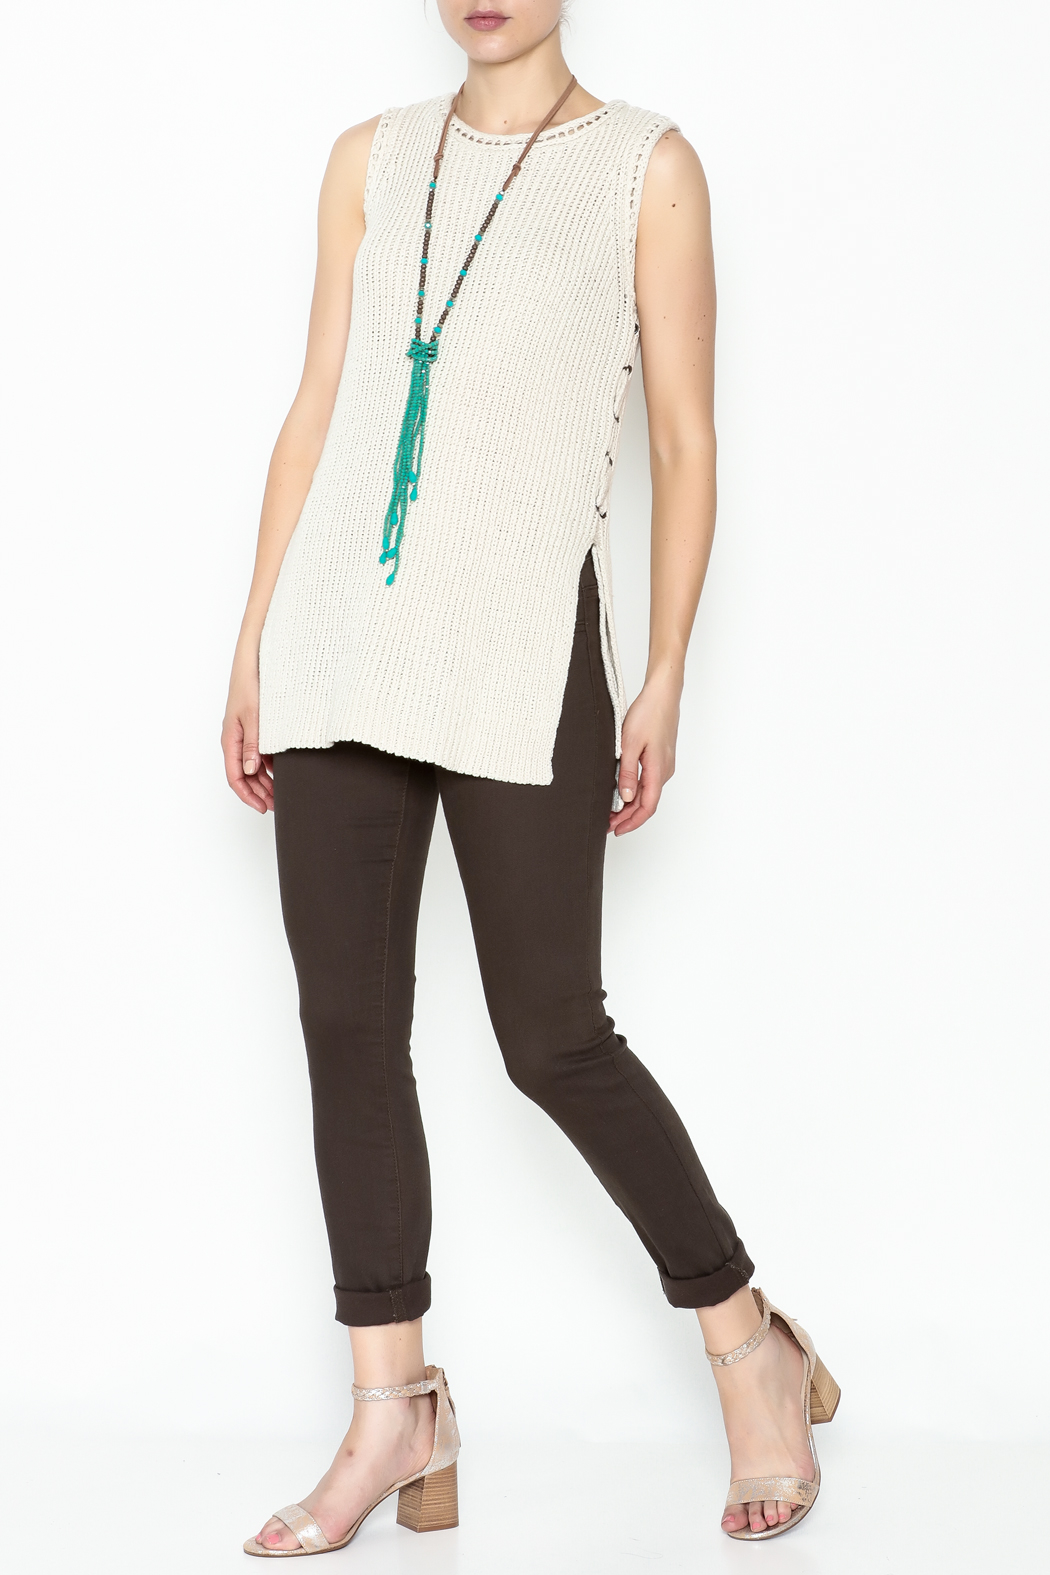 Cupcakes and Cashmere Paxton Sleeveless Sweater - Side Cropped Image